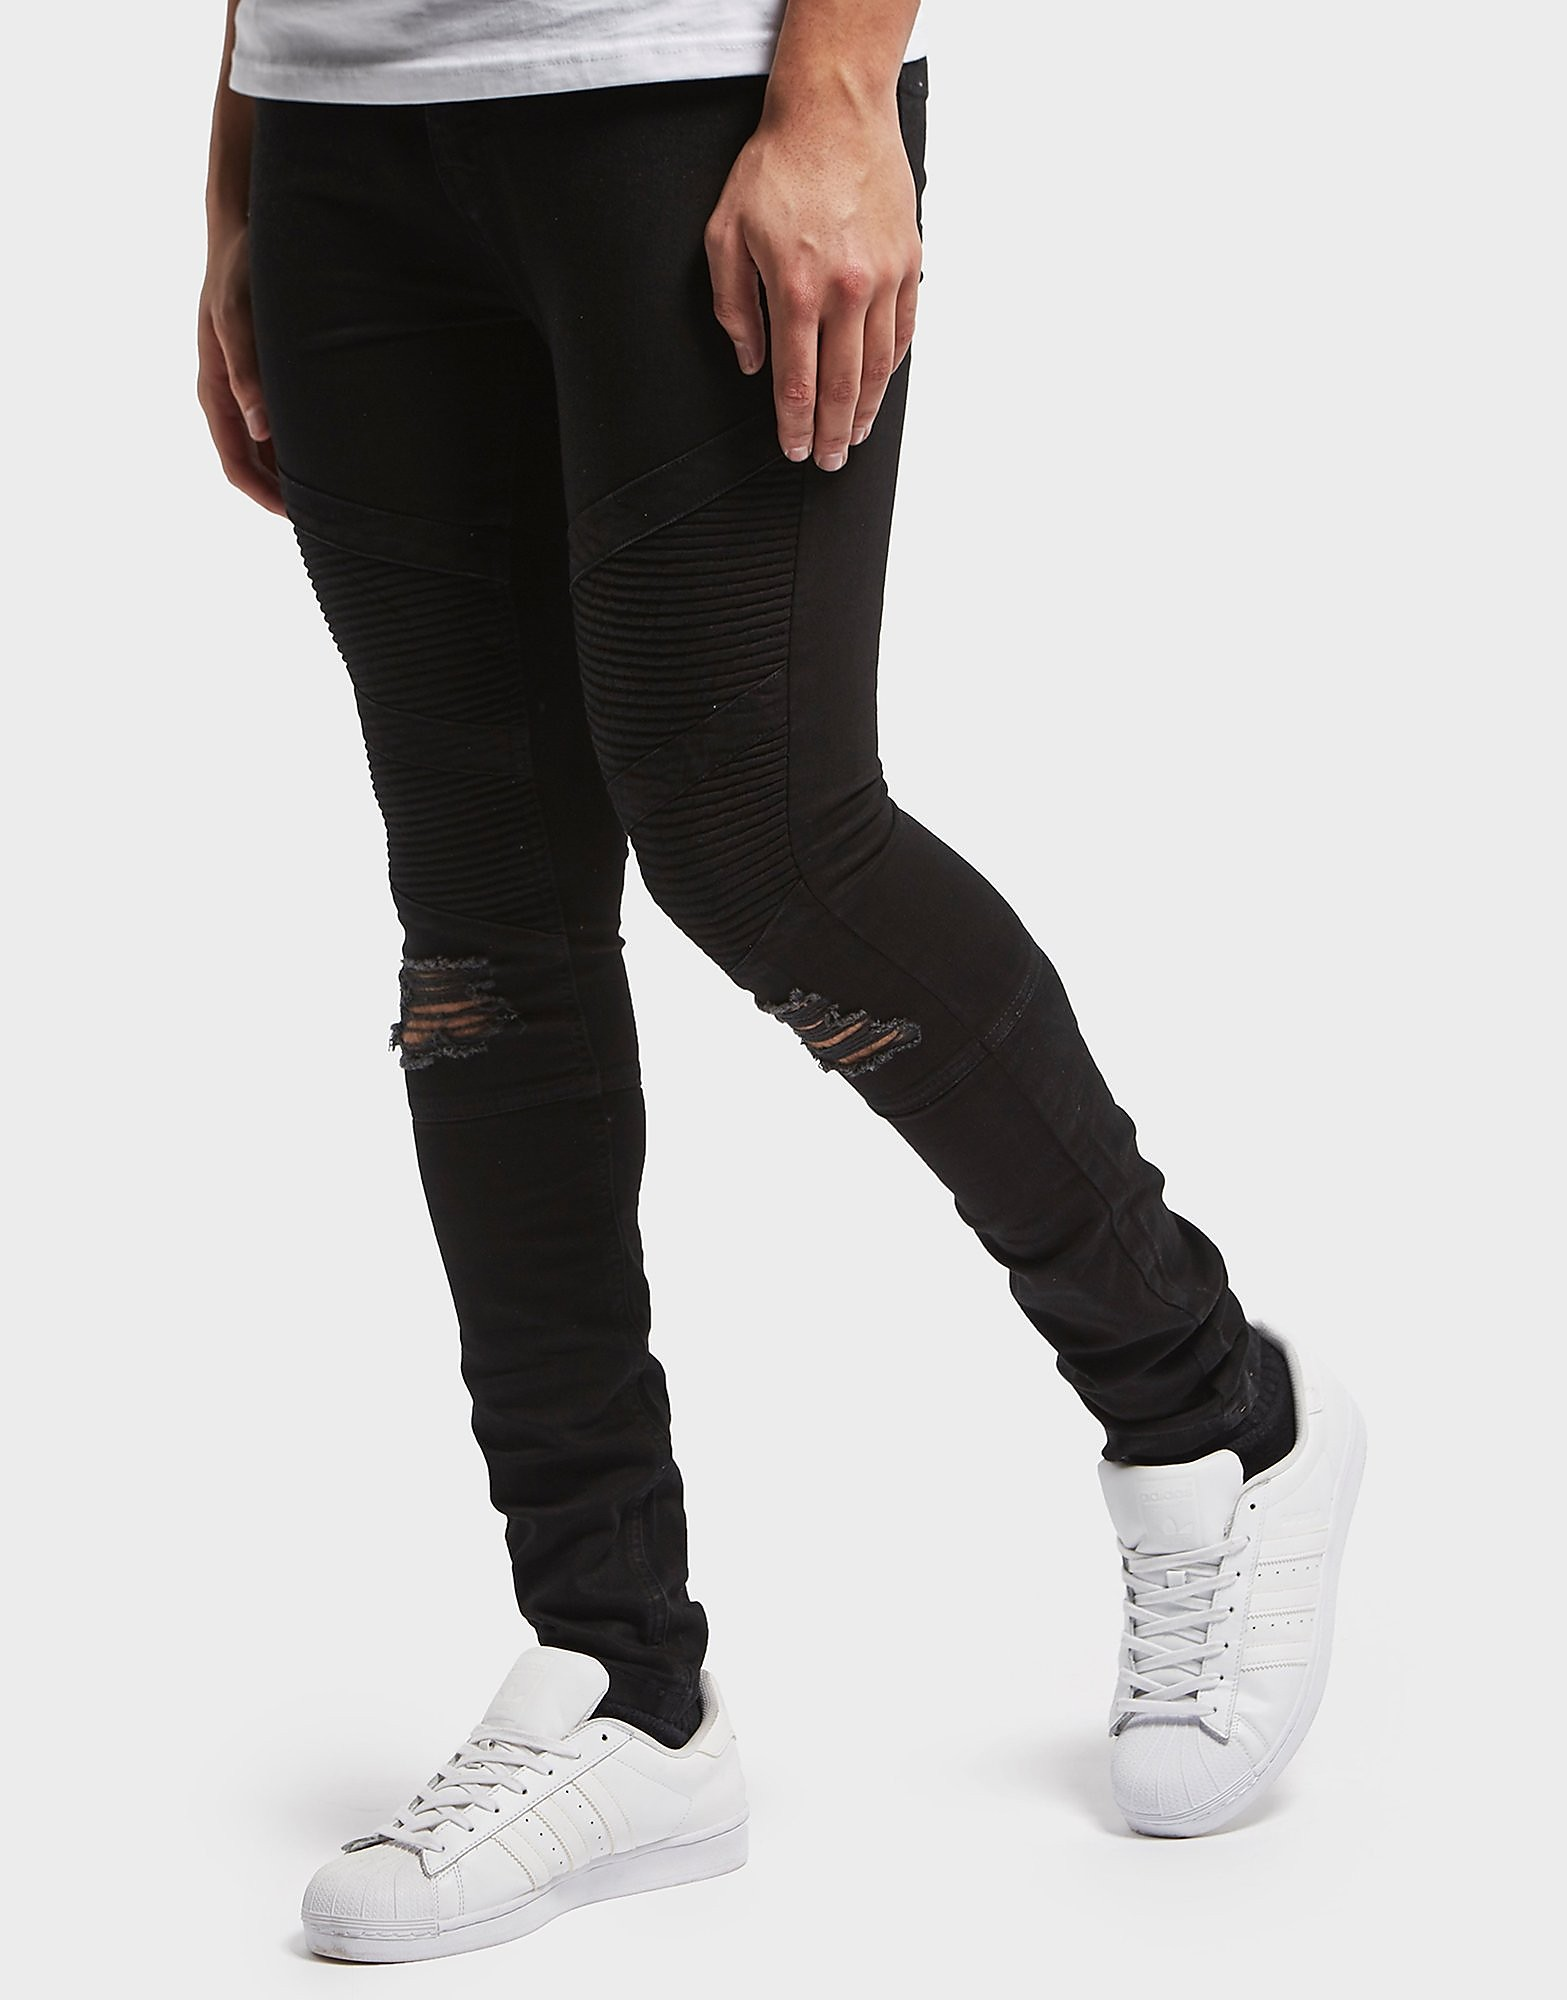 One True Saxon Biker Skinny Jeans - Exclusive